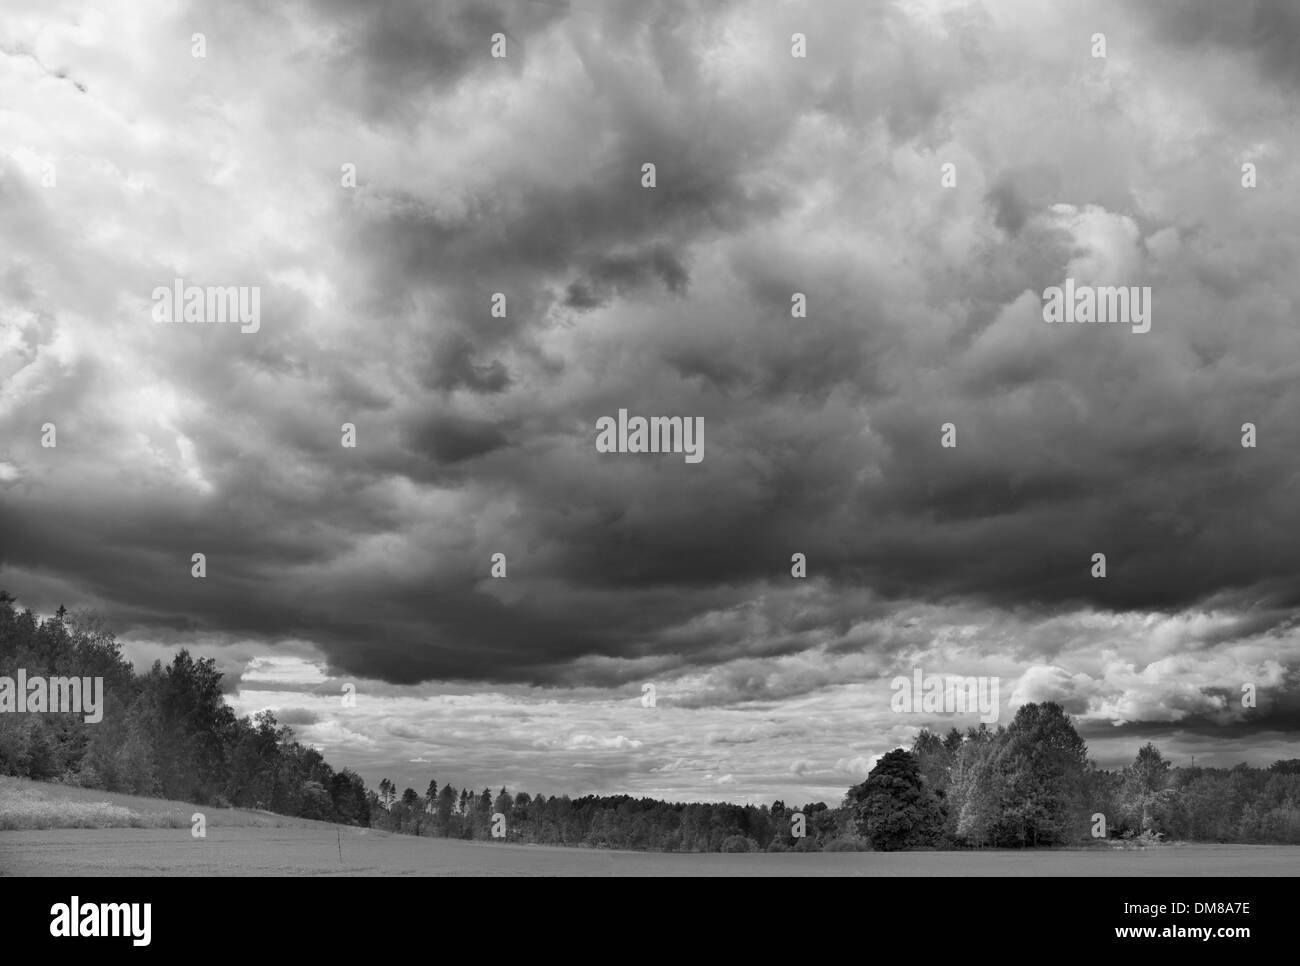 Storm clouds rolling over a grass field with forest in the background - Stock Image